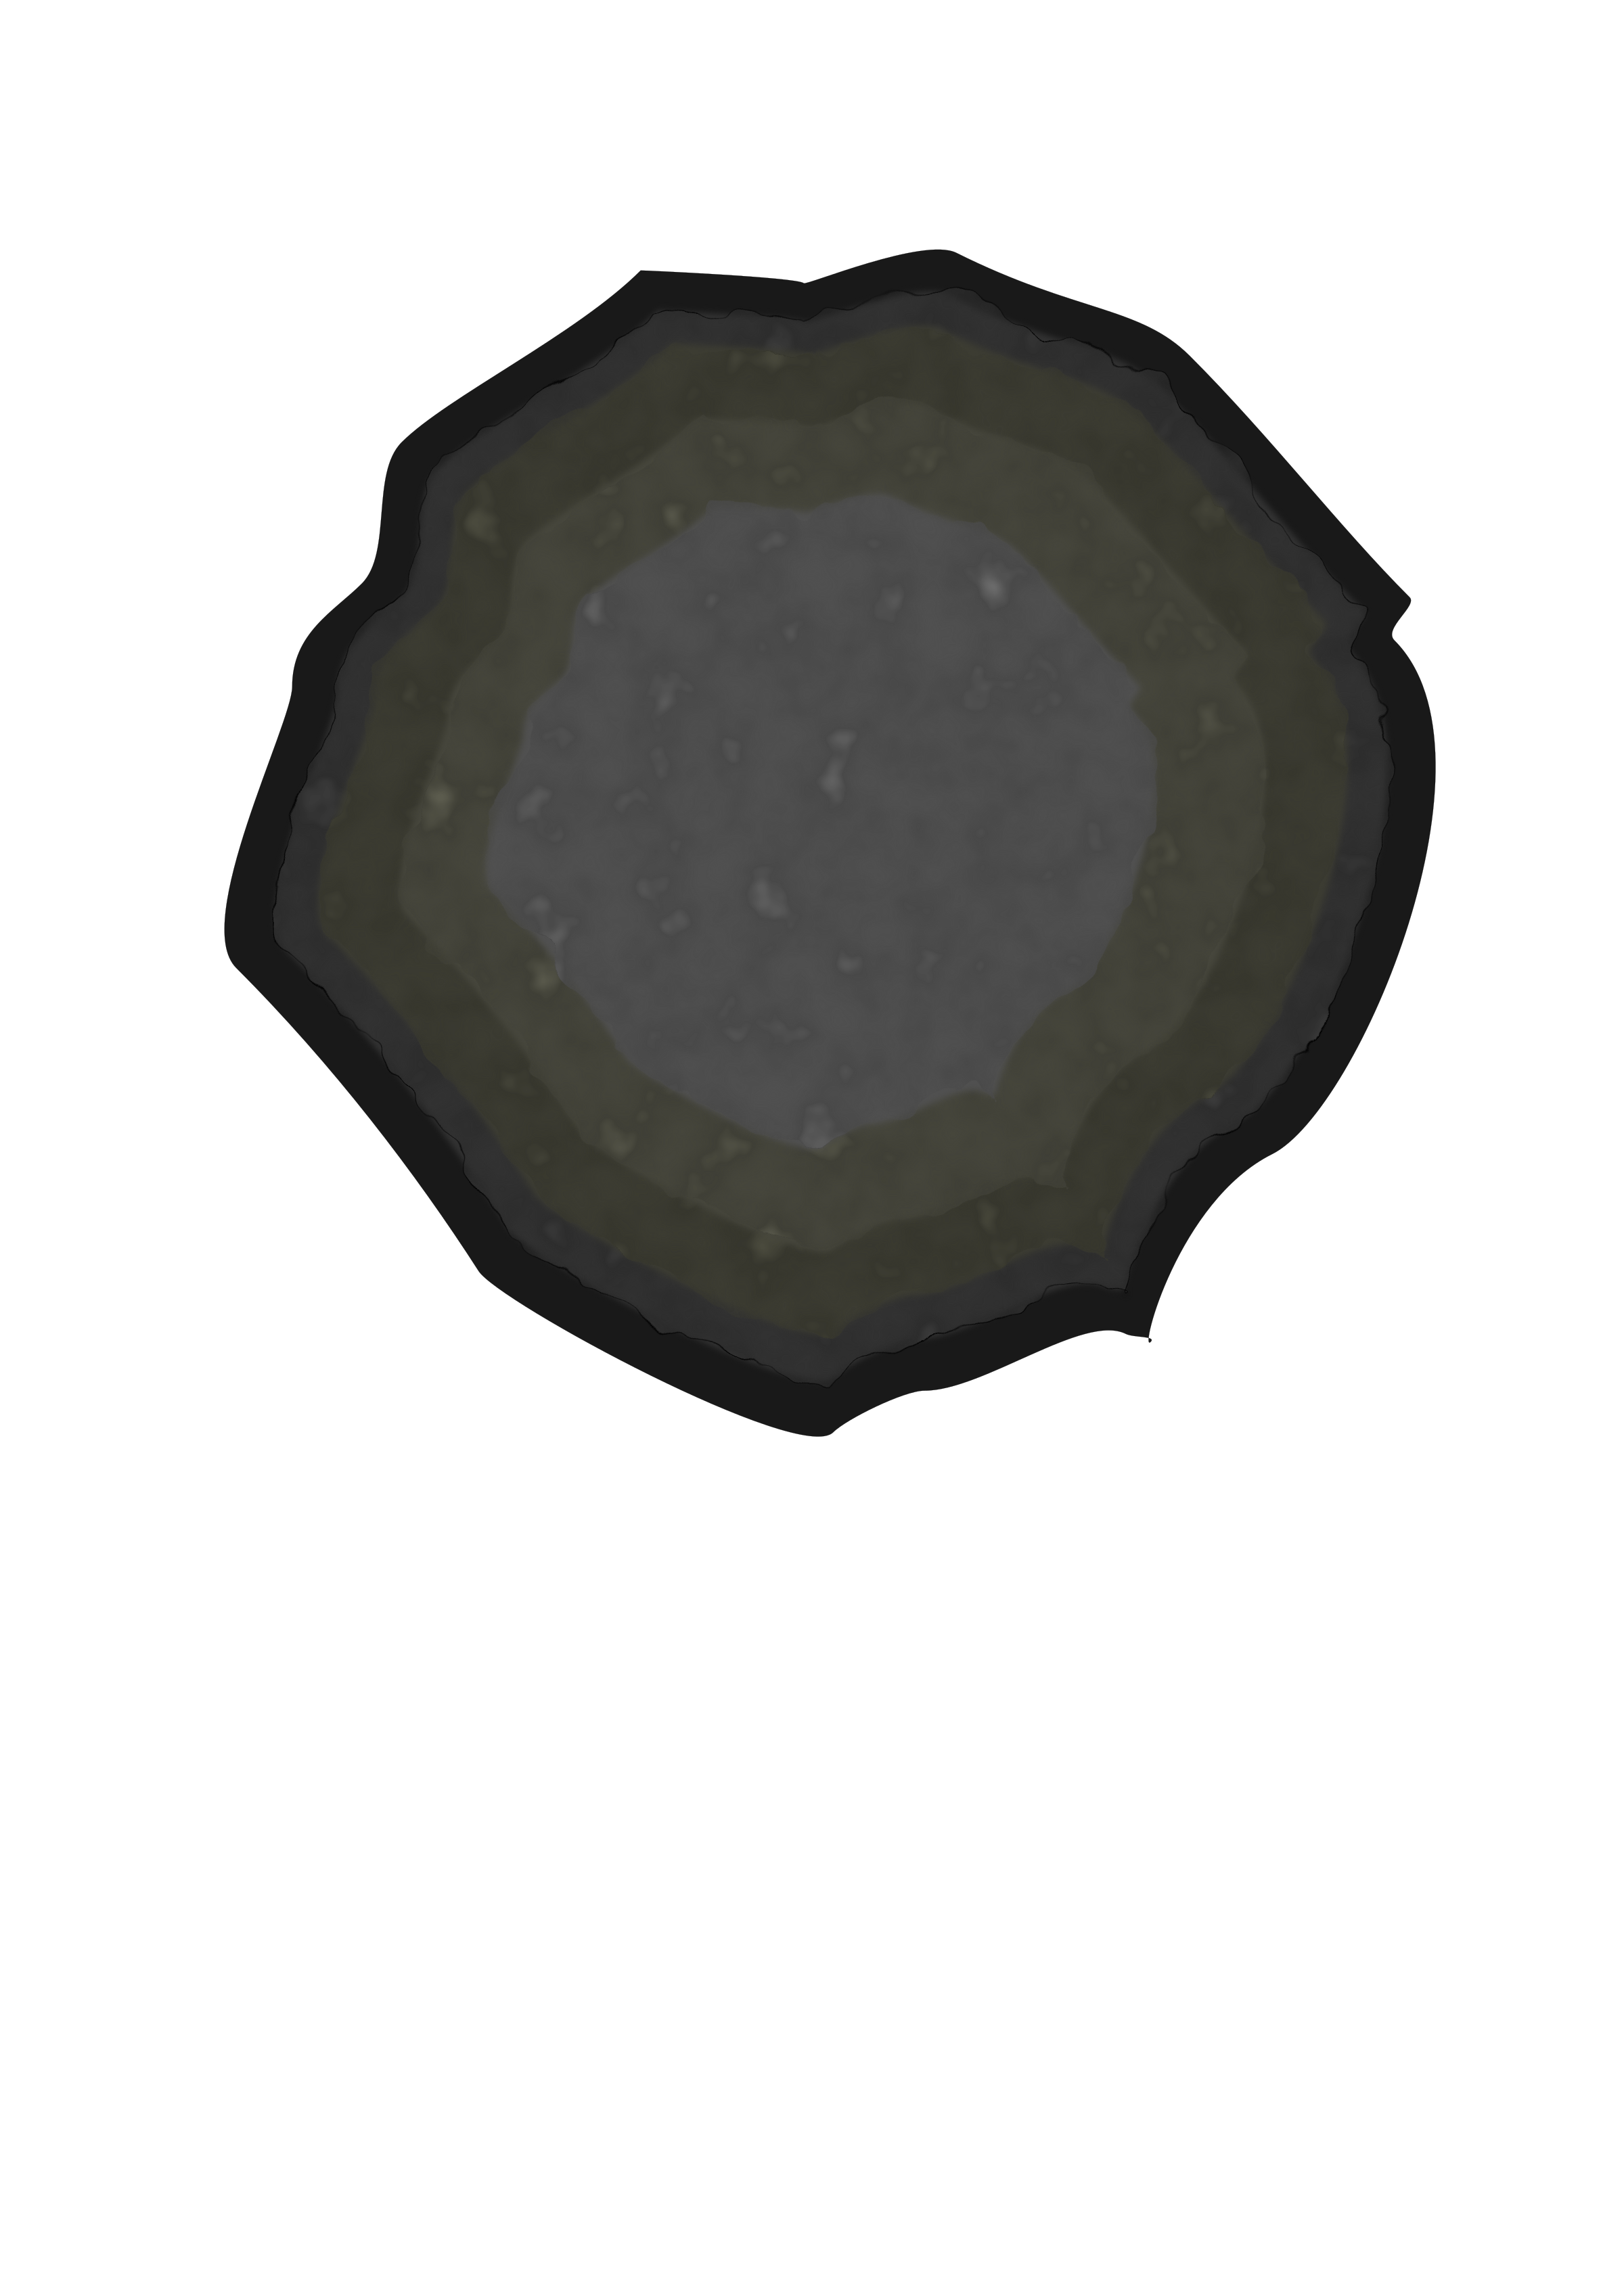 Asteroid clipart asteriod. Big image png